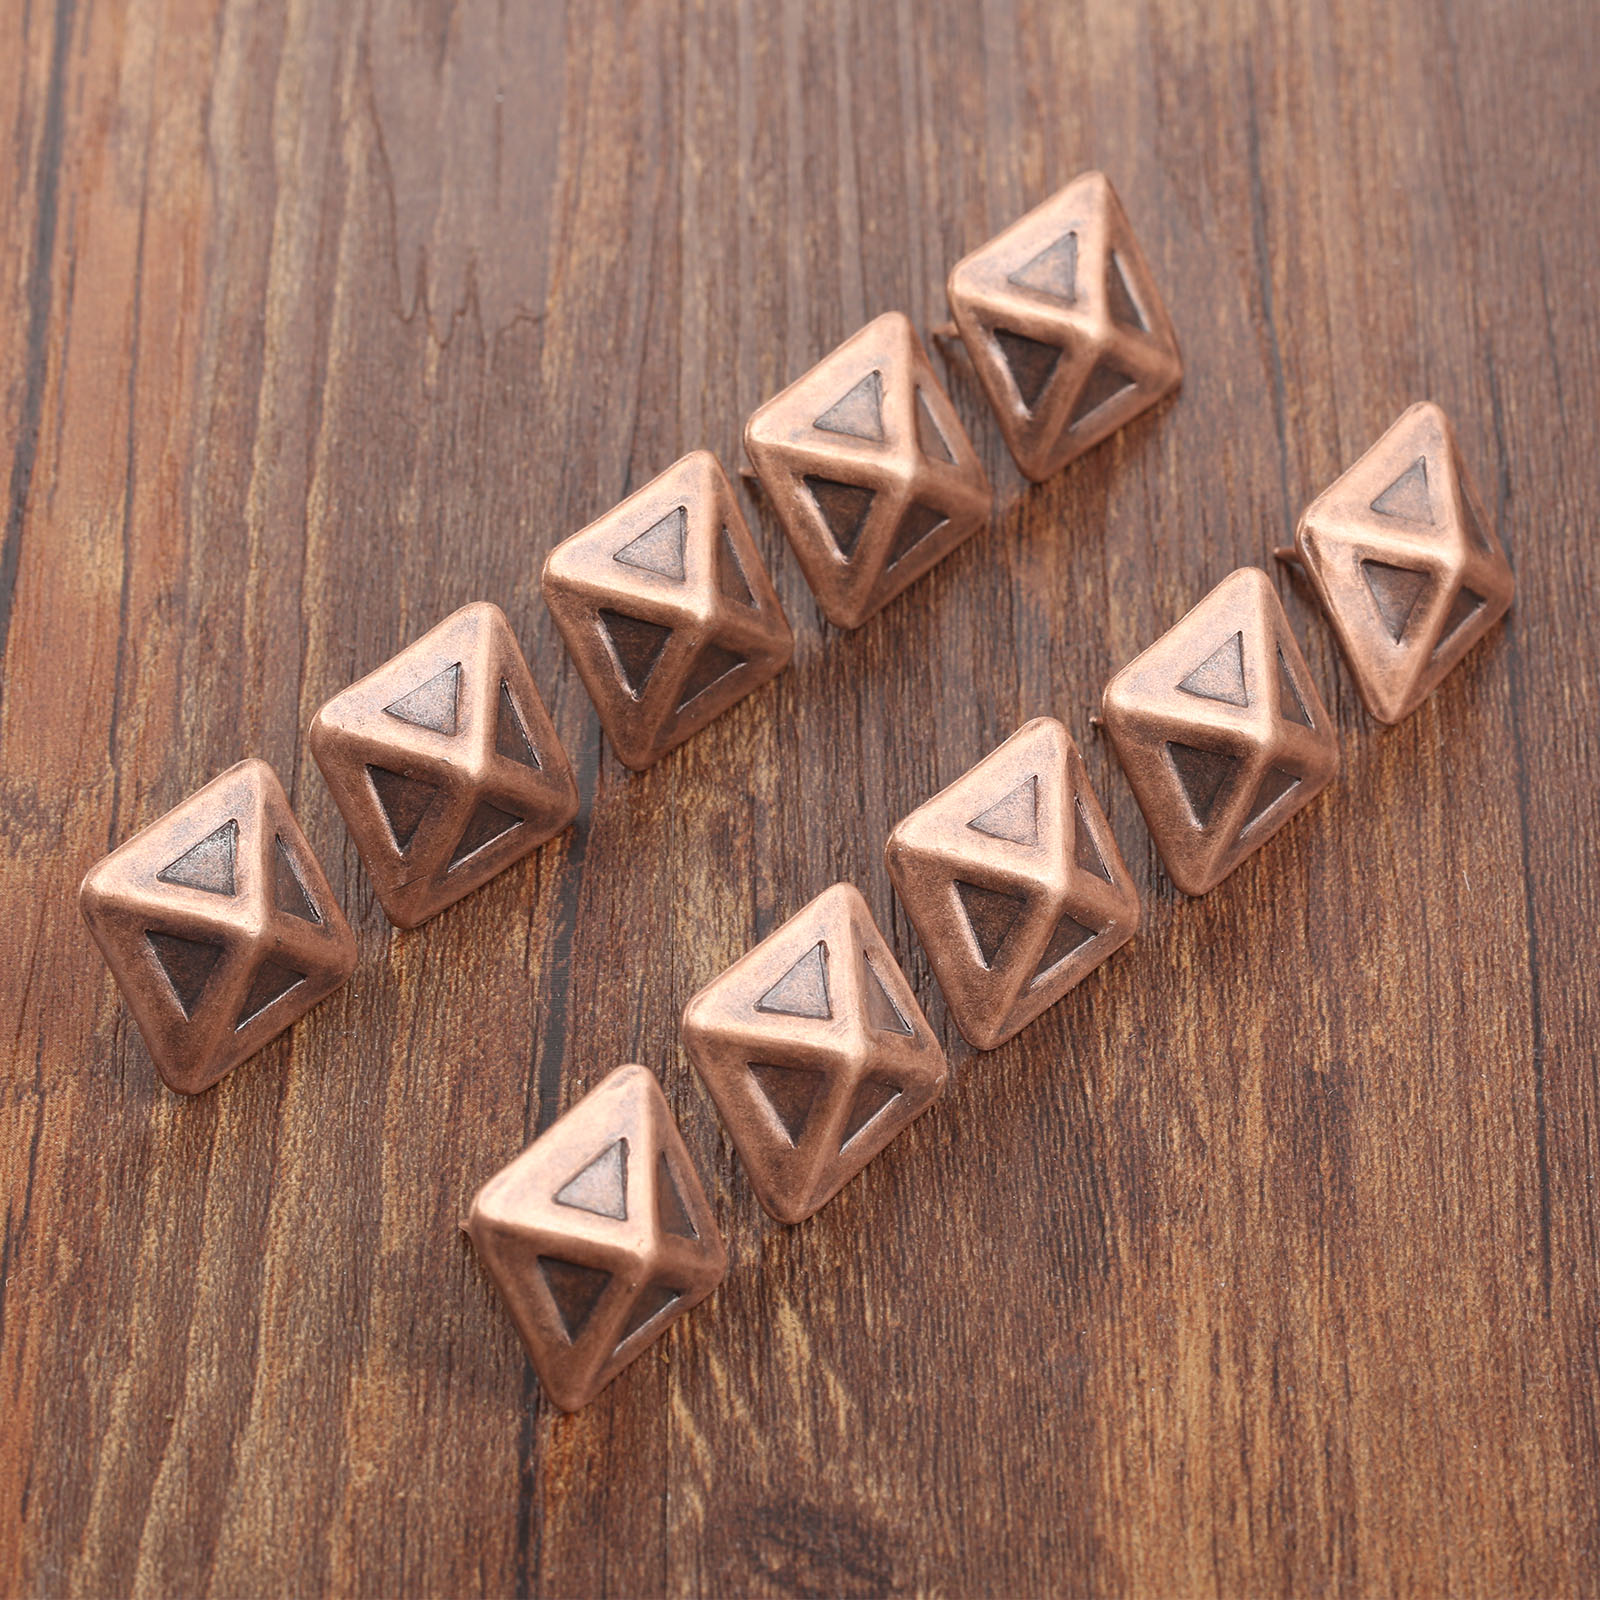 10Pcs 19*19mm Antique Upholstery Nail Tachas Jewelry Gift Box Door Sofa Furniture Decorative Tack Stud Pushpin Red Bronze